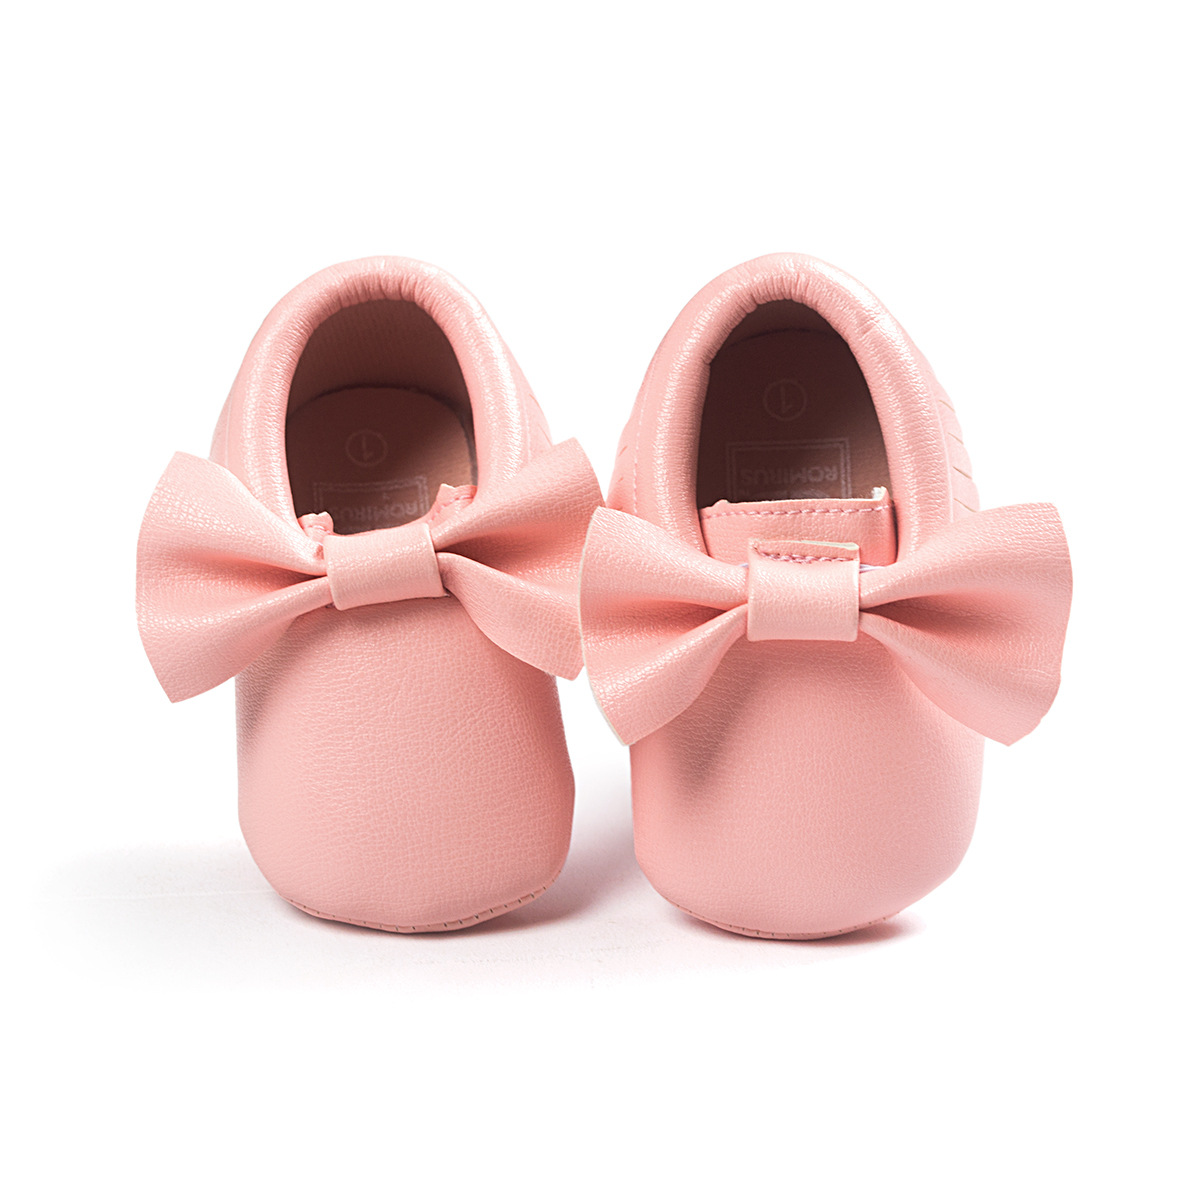 Spring-Toddler-baby-moccasins-comfort-shoes-bow-soft-sole-bowknot-tassels-toddler-shoes-baby-PU-leather-shoes-baby-feetwear-5378-2